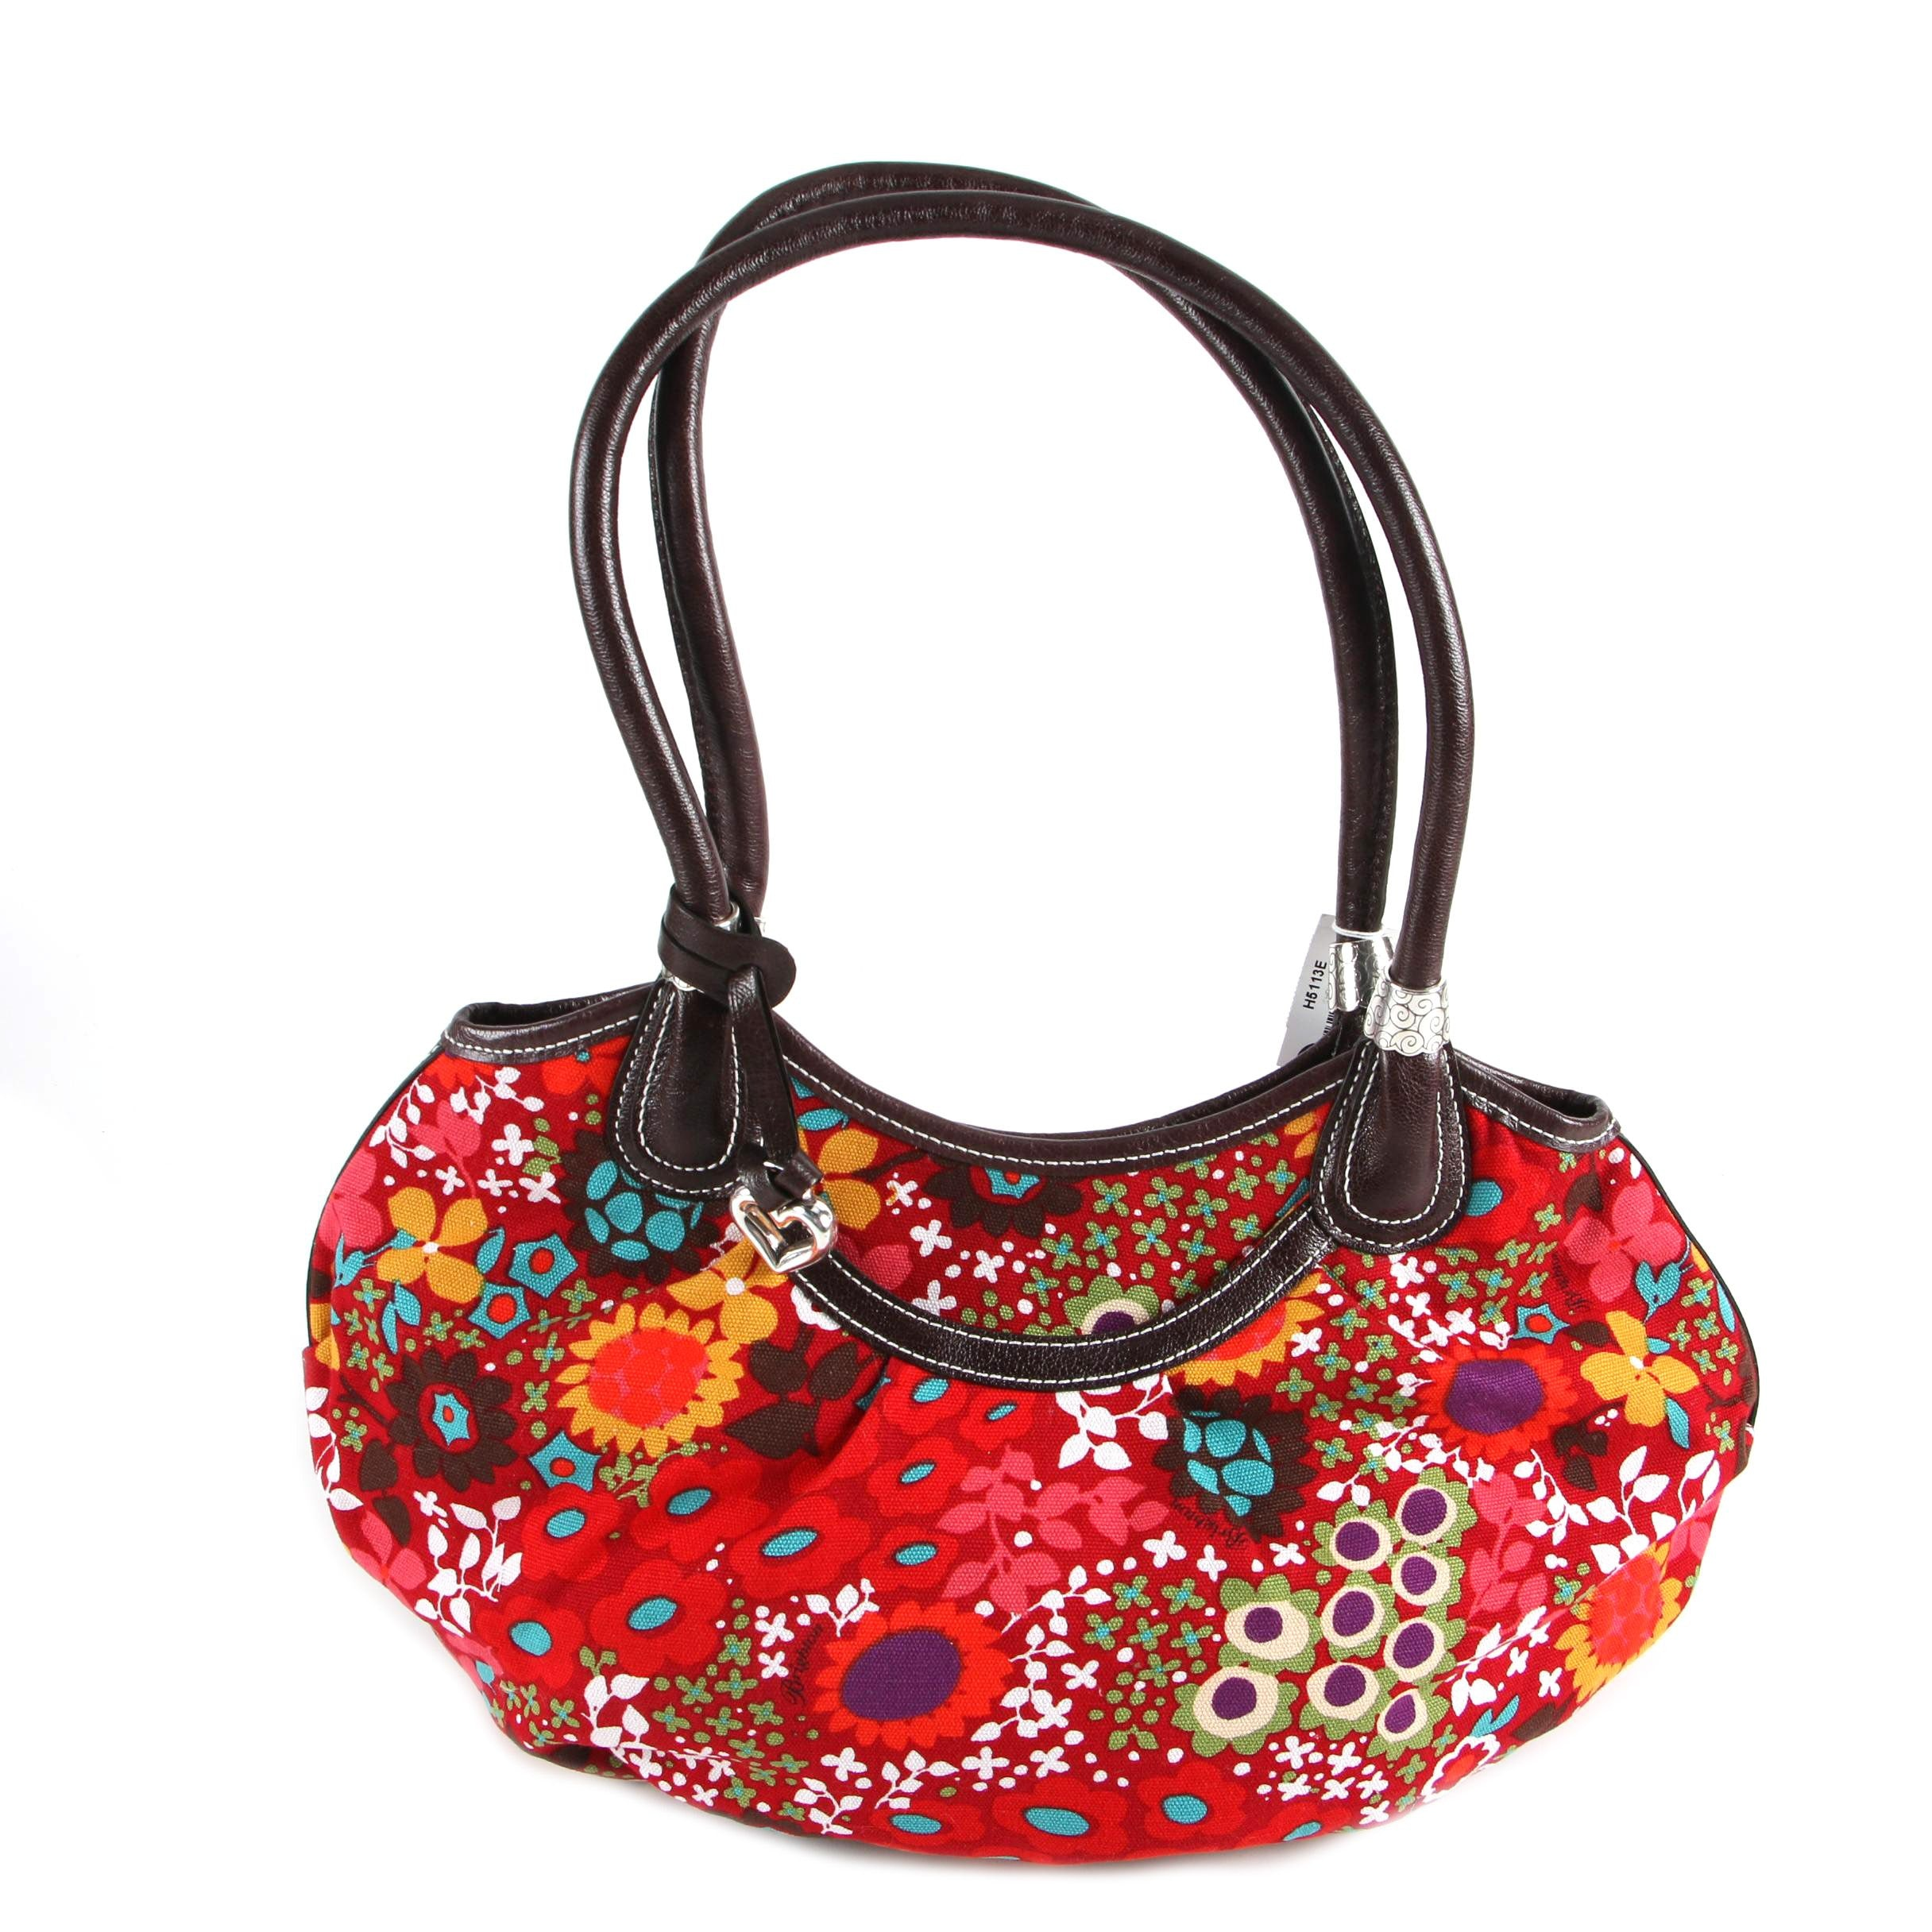 Brighton Floral Print Canvas and Leather Satchel